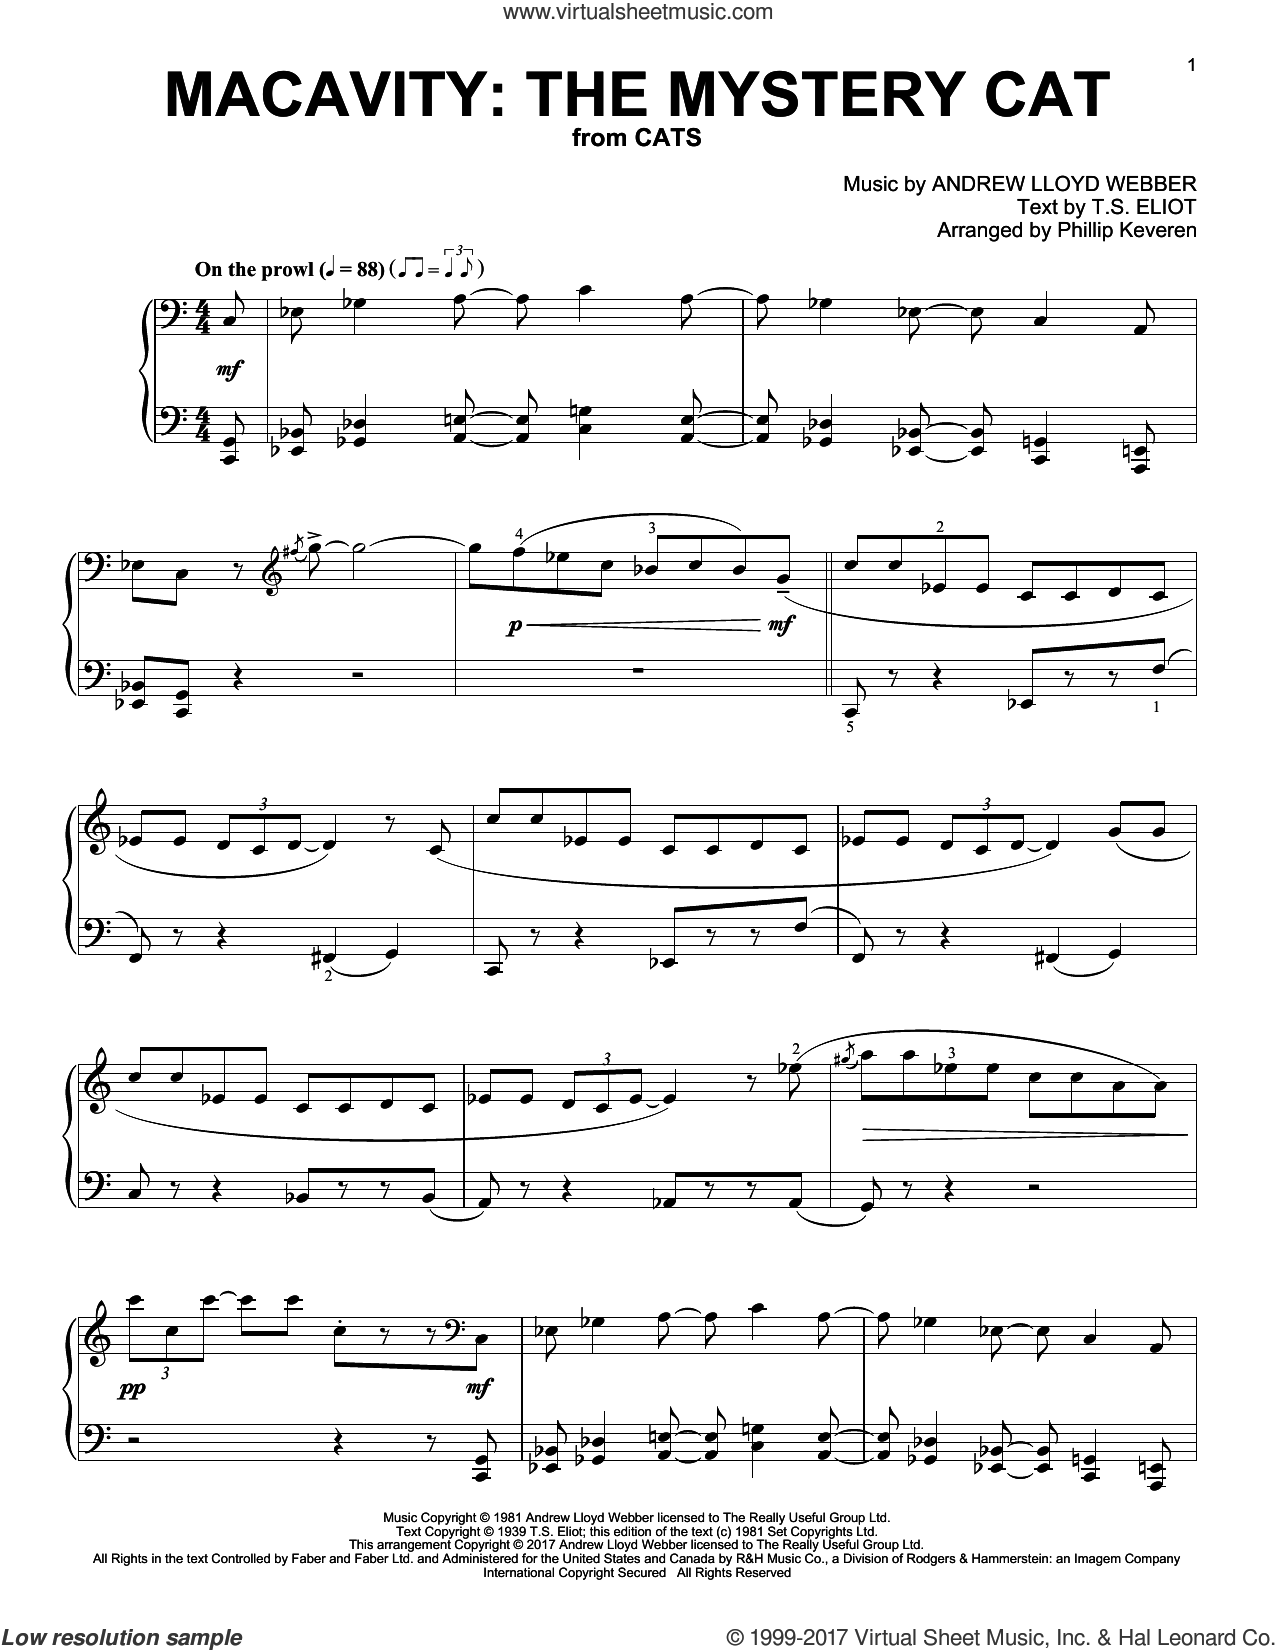 Macavity: The Mystery Cat sheet music for piano solo by Andrew Lloyd Webber, Phillip Keveren and T.S. Eliot, intermediate. Score Image Preview.